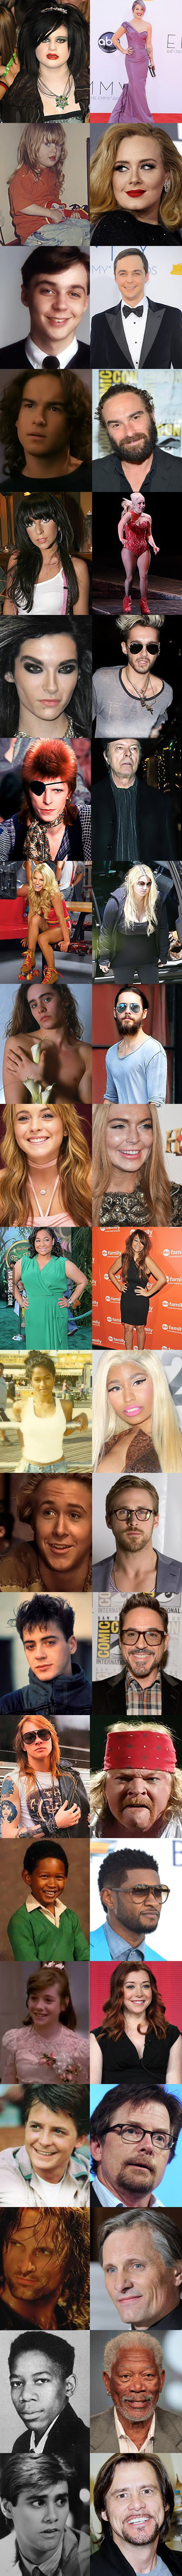 Celebrities change over time